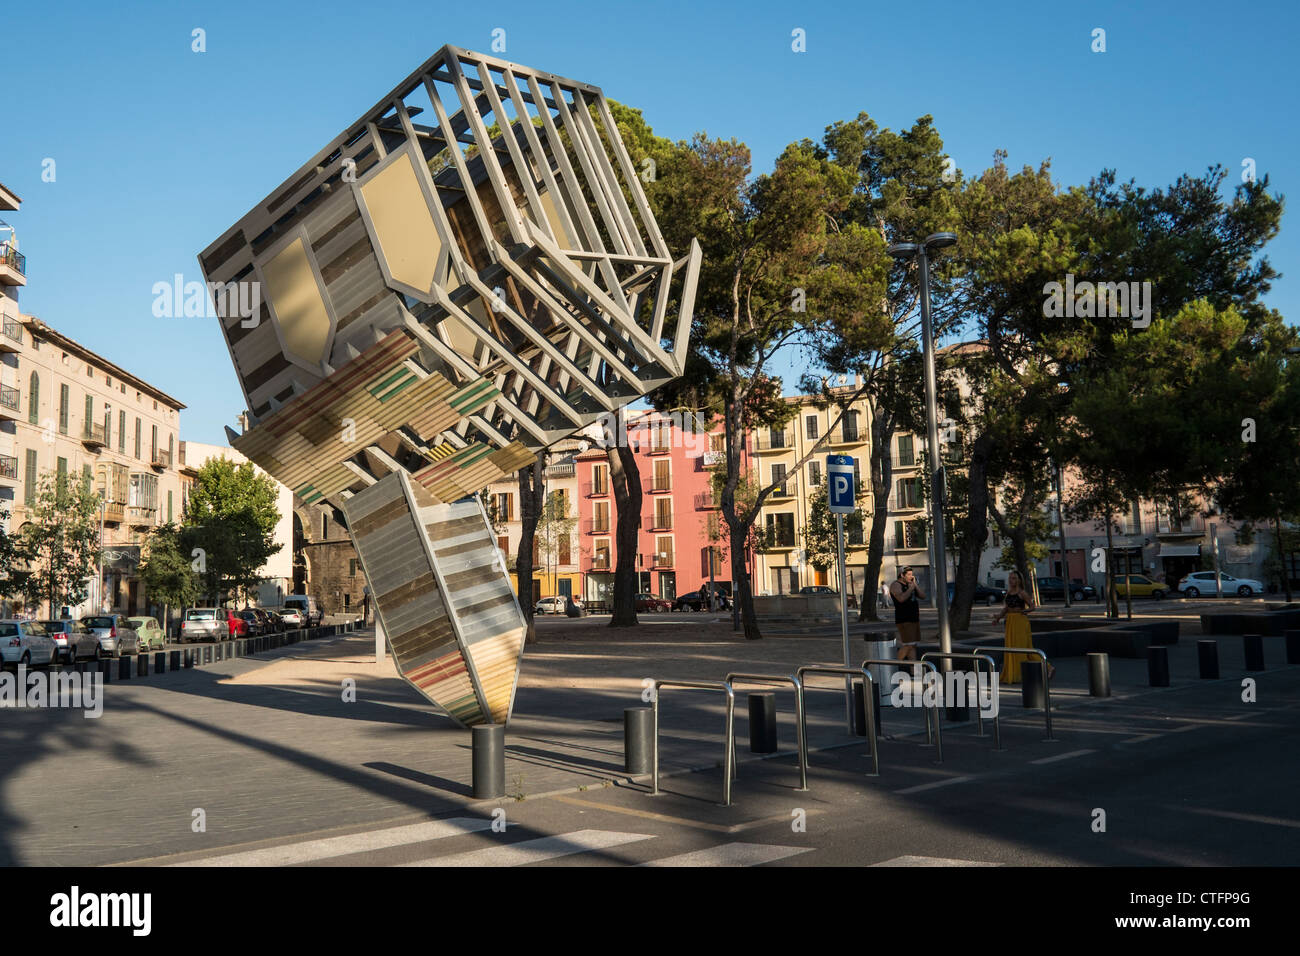 Sculpture of an Up Ended Church, Palma, Mallorca, Spain. - Stock Image